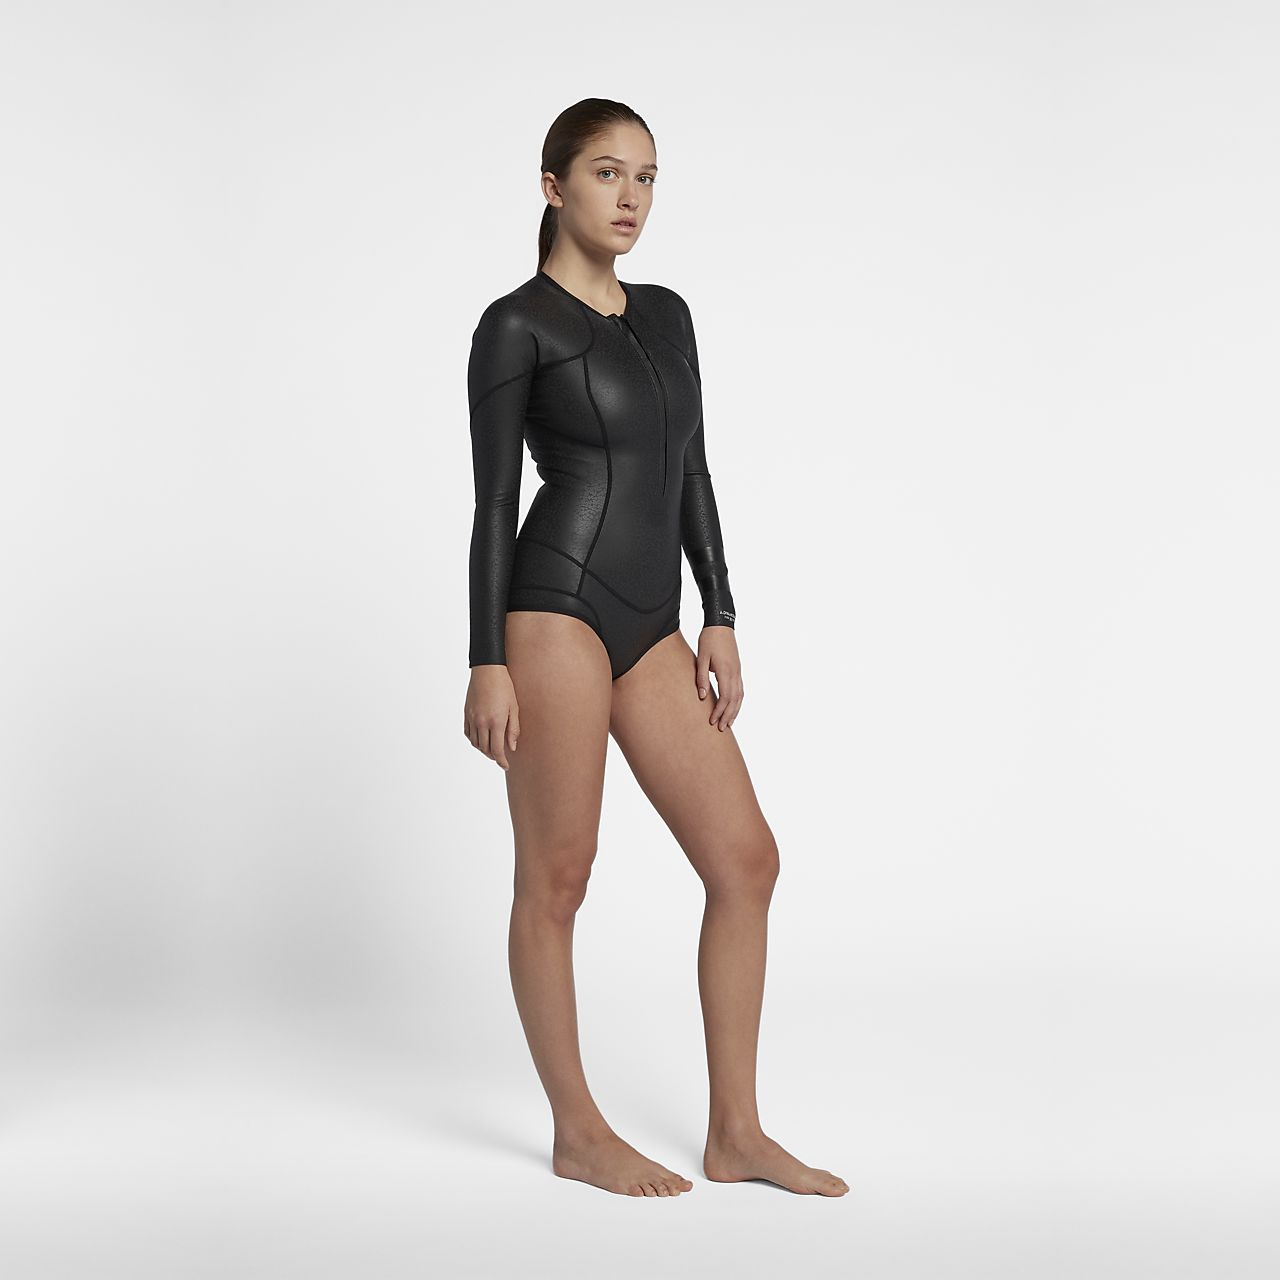 f953f3f137 Hurley Advantage Plus 0.5mm Windskin Springsuit Women s Wetsuit ...